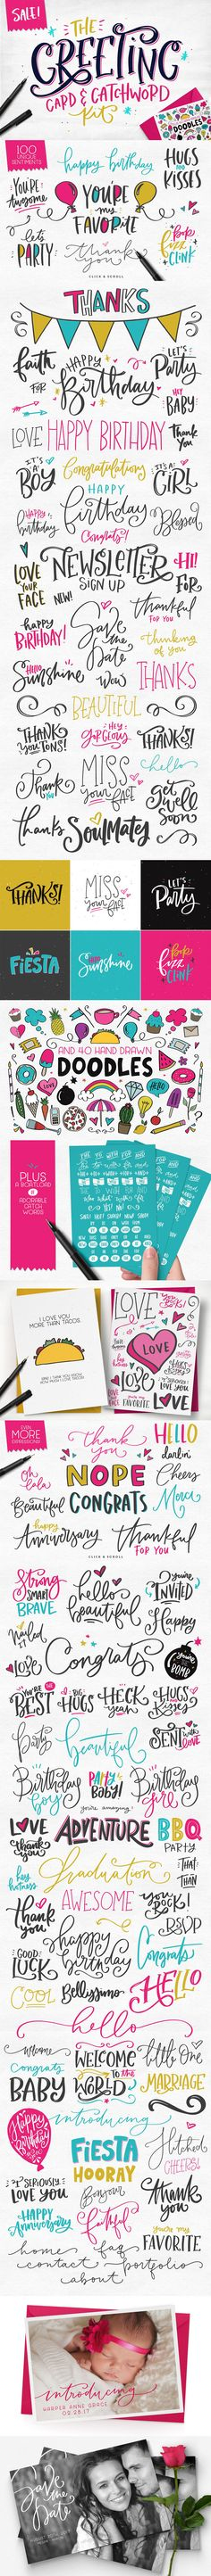 Introducing The one-of-a-kind, Greeting Card and #Catchword Kit, a totally unique, hand-illustrated treasure trove of ready-to-use catchwords, expressions, sentiments, #greetings and more! ( #vector #art #quotes #typography #inspiration #calligraphy #font #typeface #love #lettering #watercolor  )